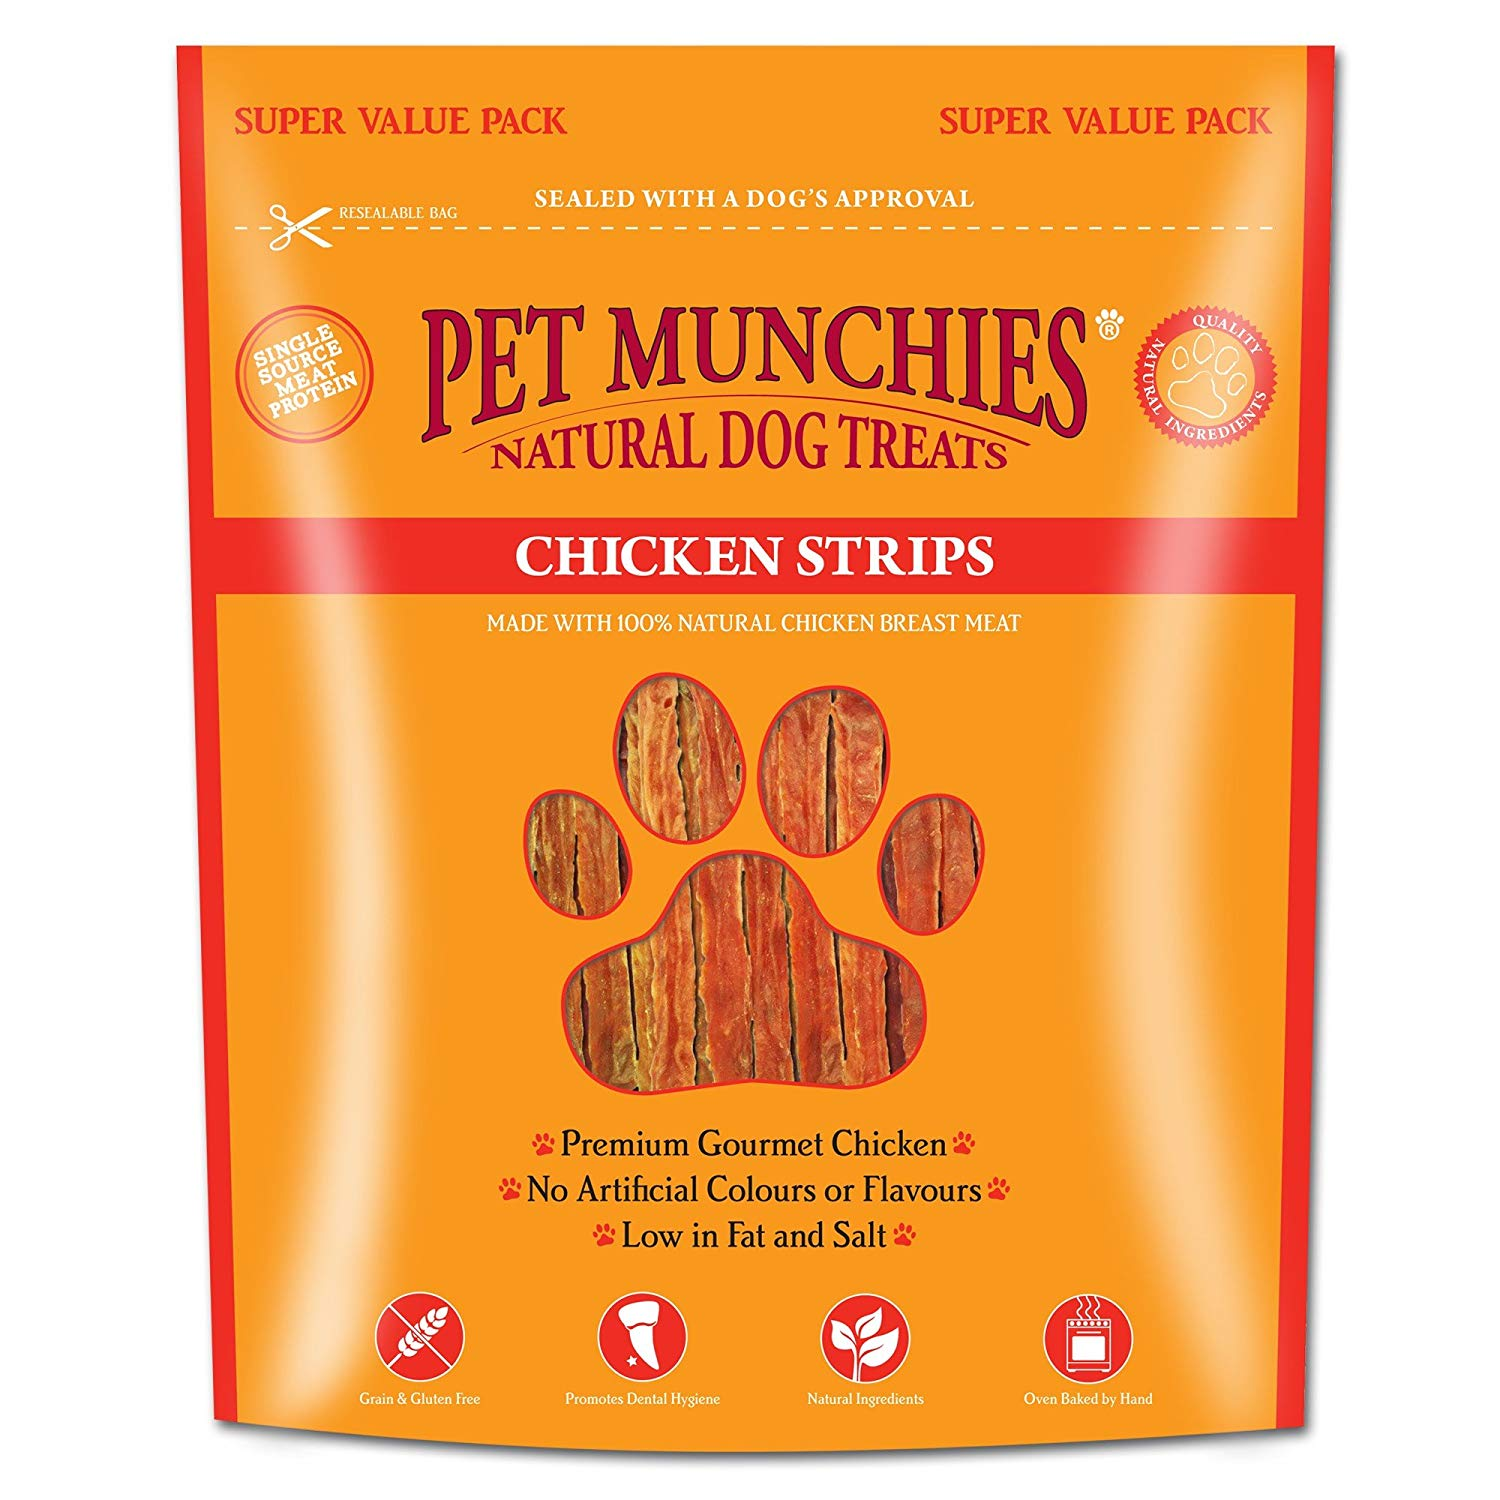 Pet Munchies Super Value Pack Chicken Strips 320g